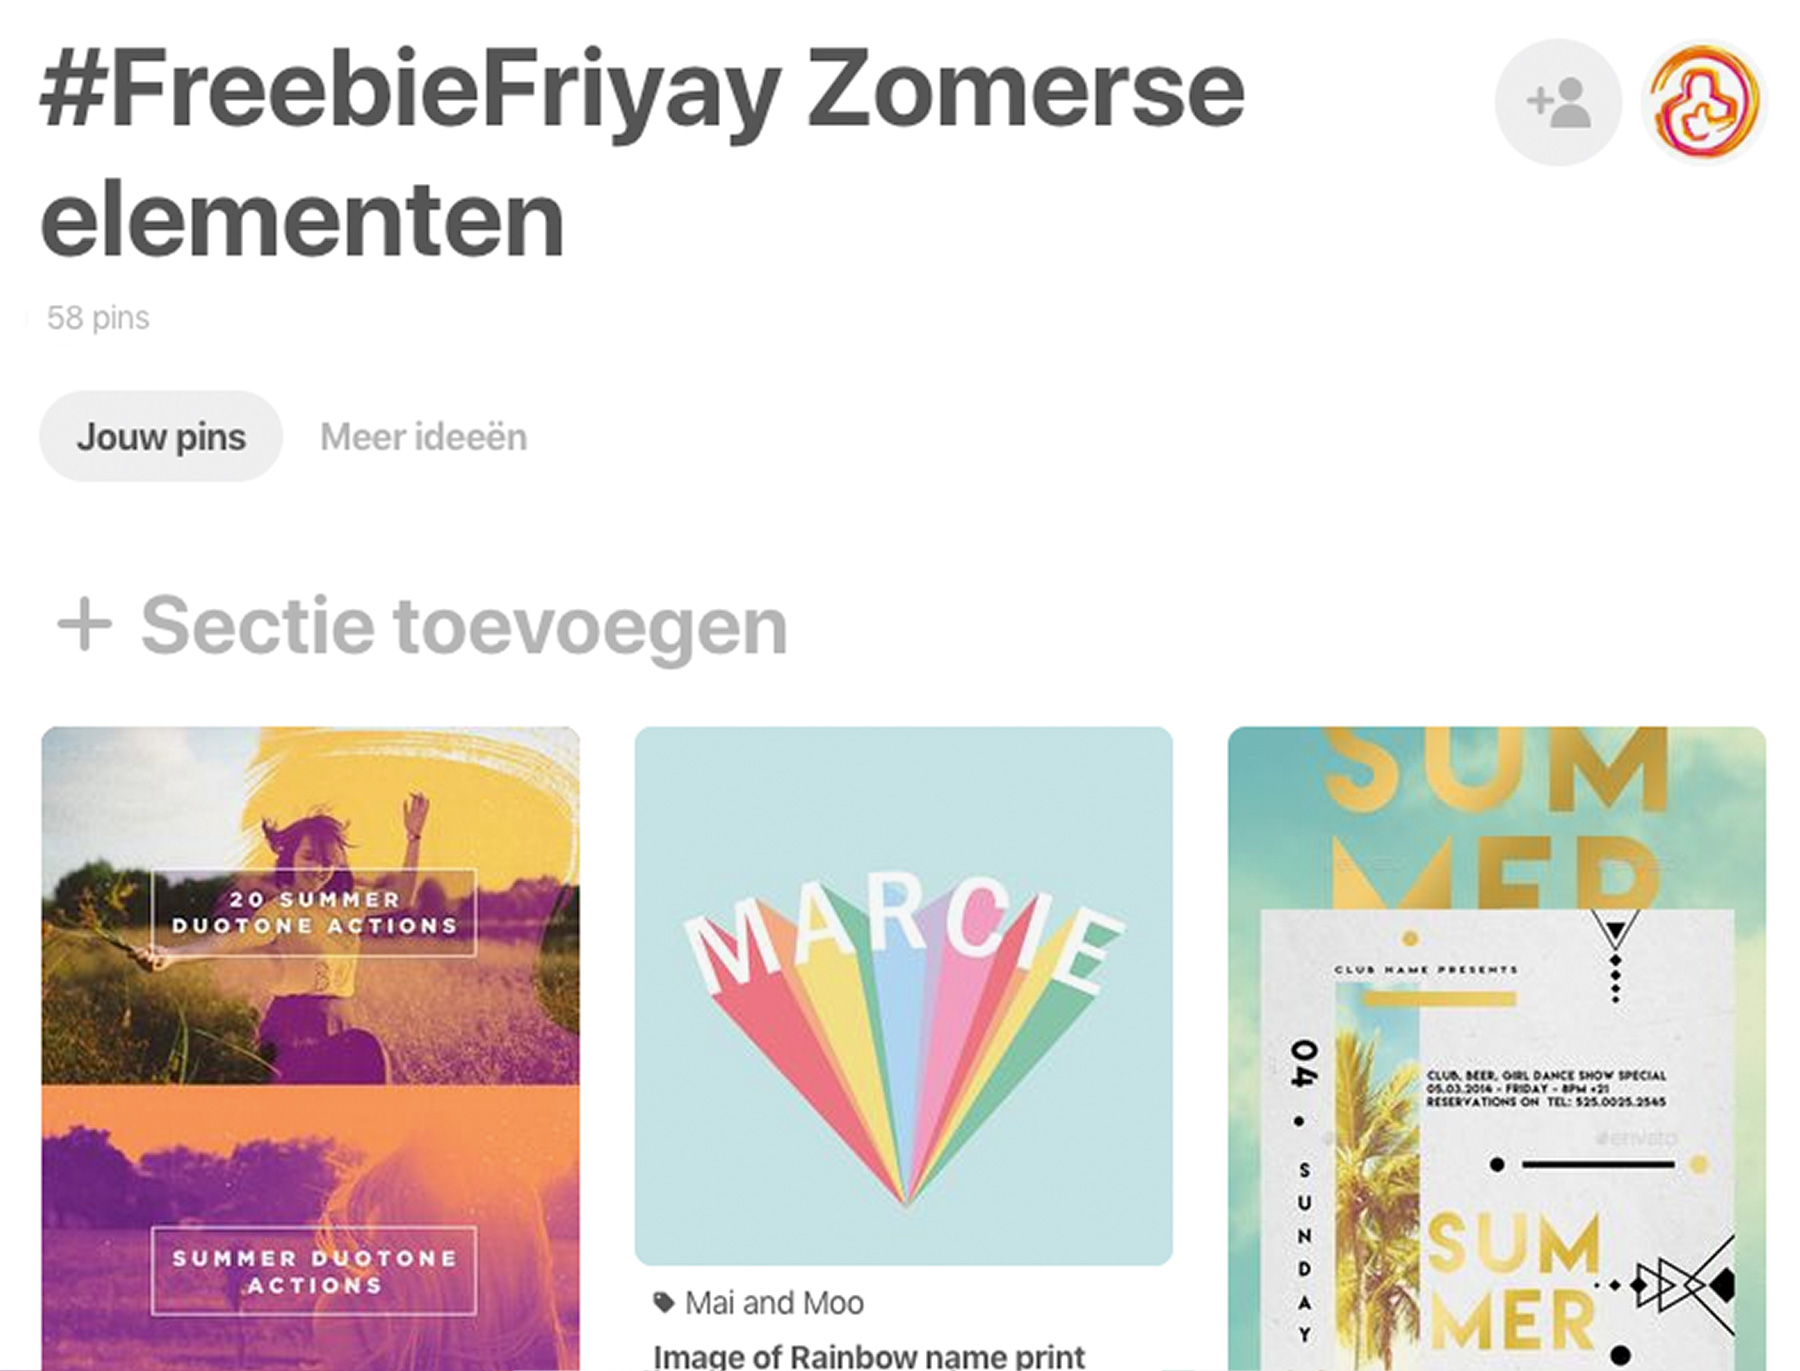 freebiefriyay-week-21 pinterest-zomerse-elementen